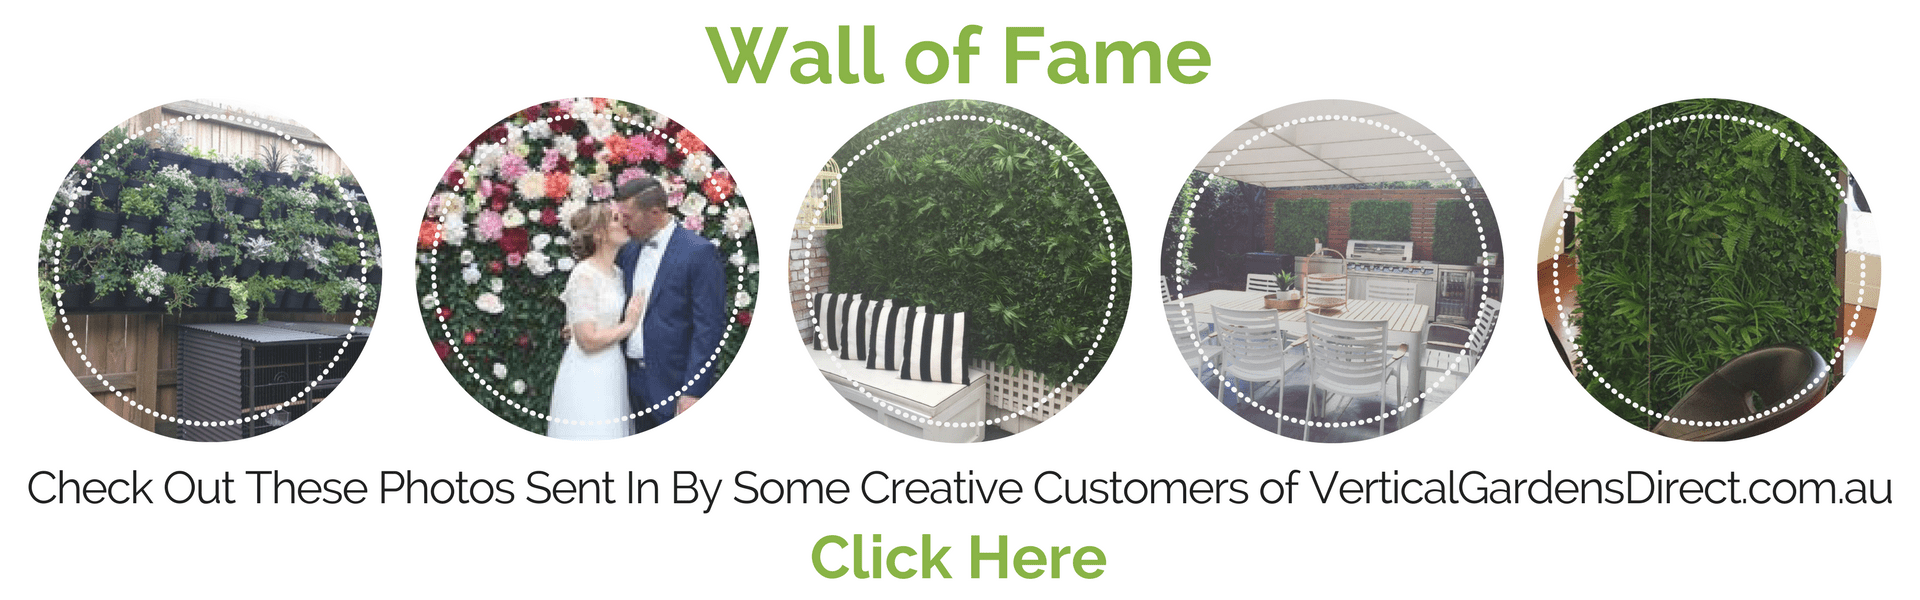 Browse Photos Of Our Customers Vertical Gardens, Green Walls, Artificial Hedges and More.